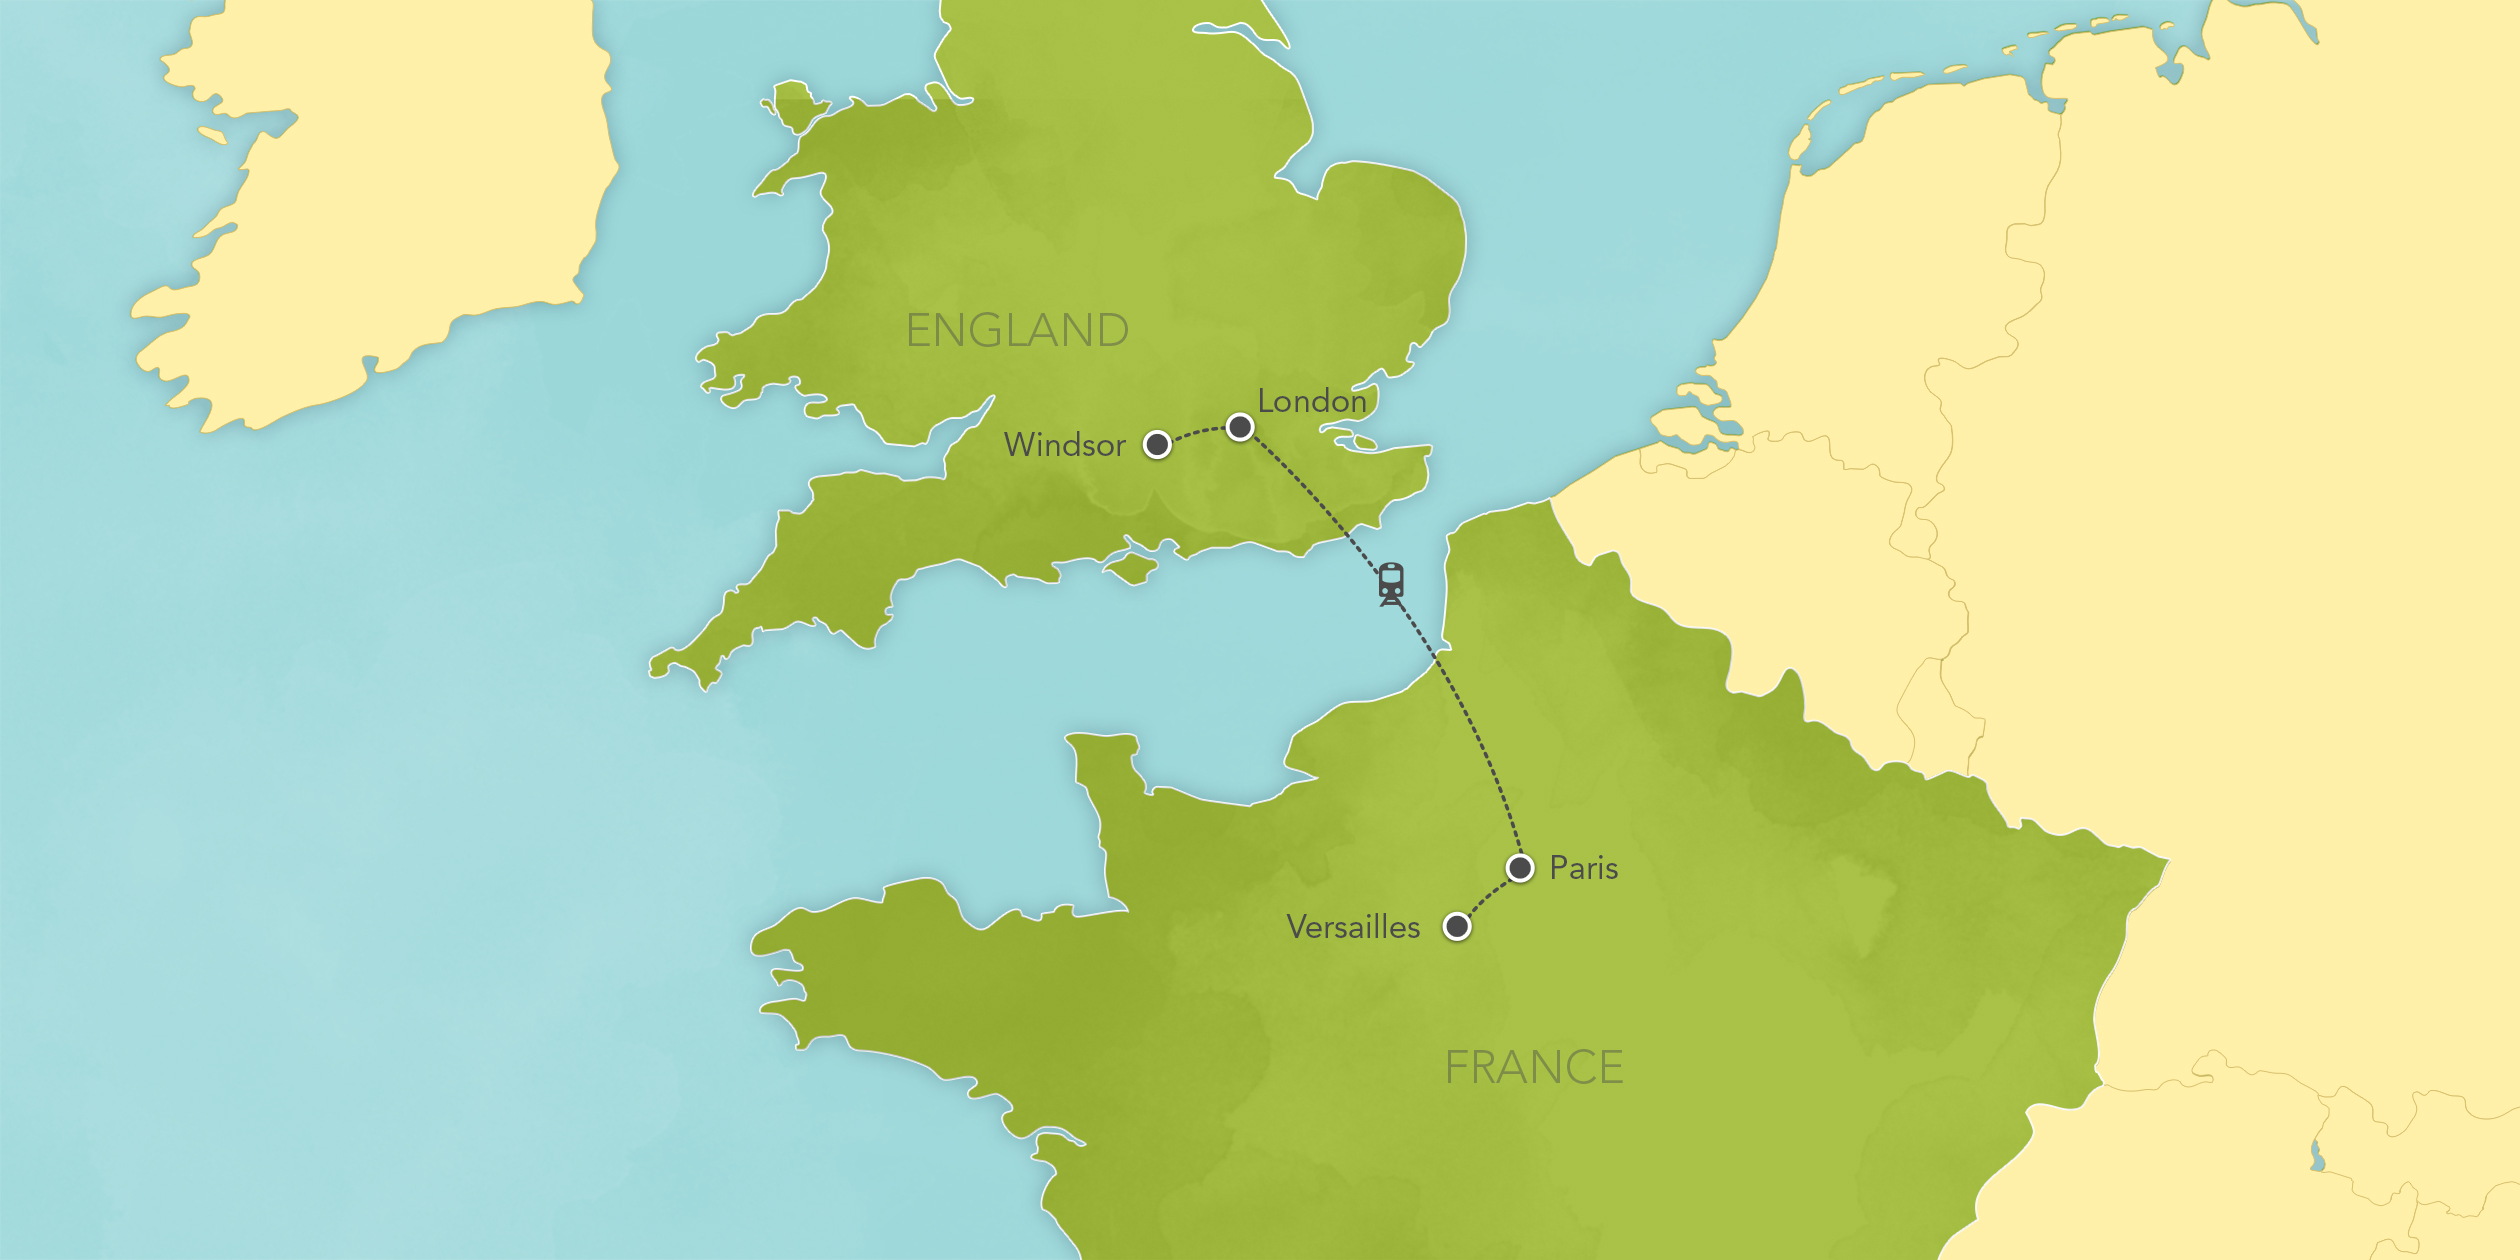 Itinerary map of England & France: London, Paris, Versailles 2019